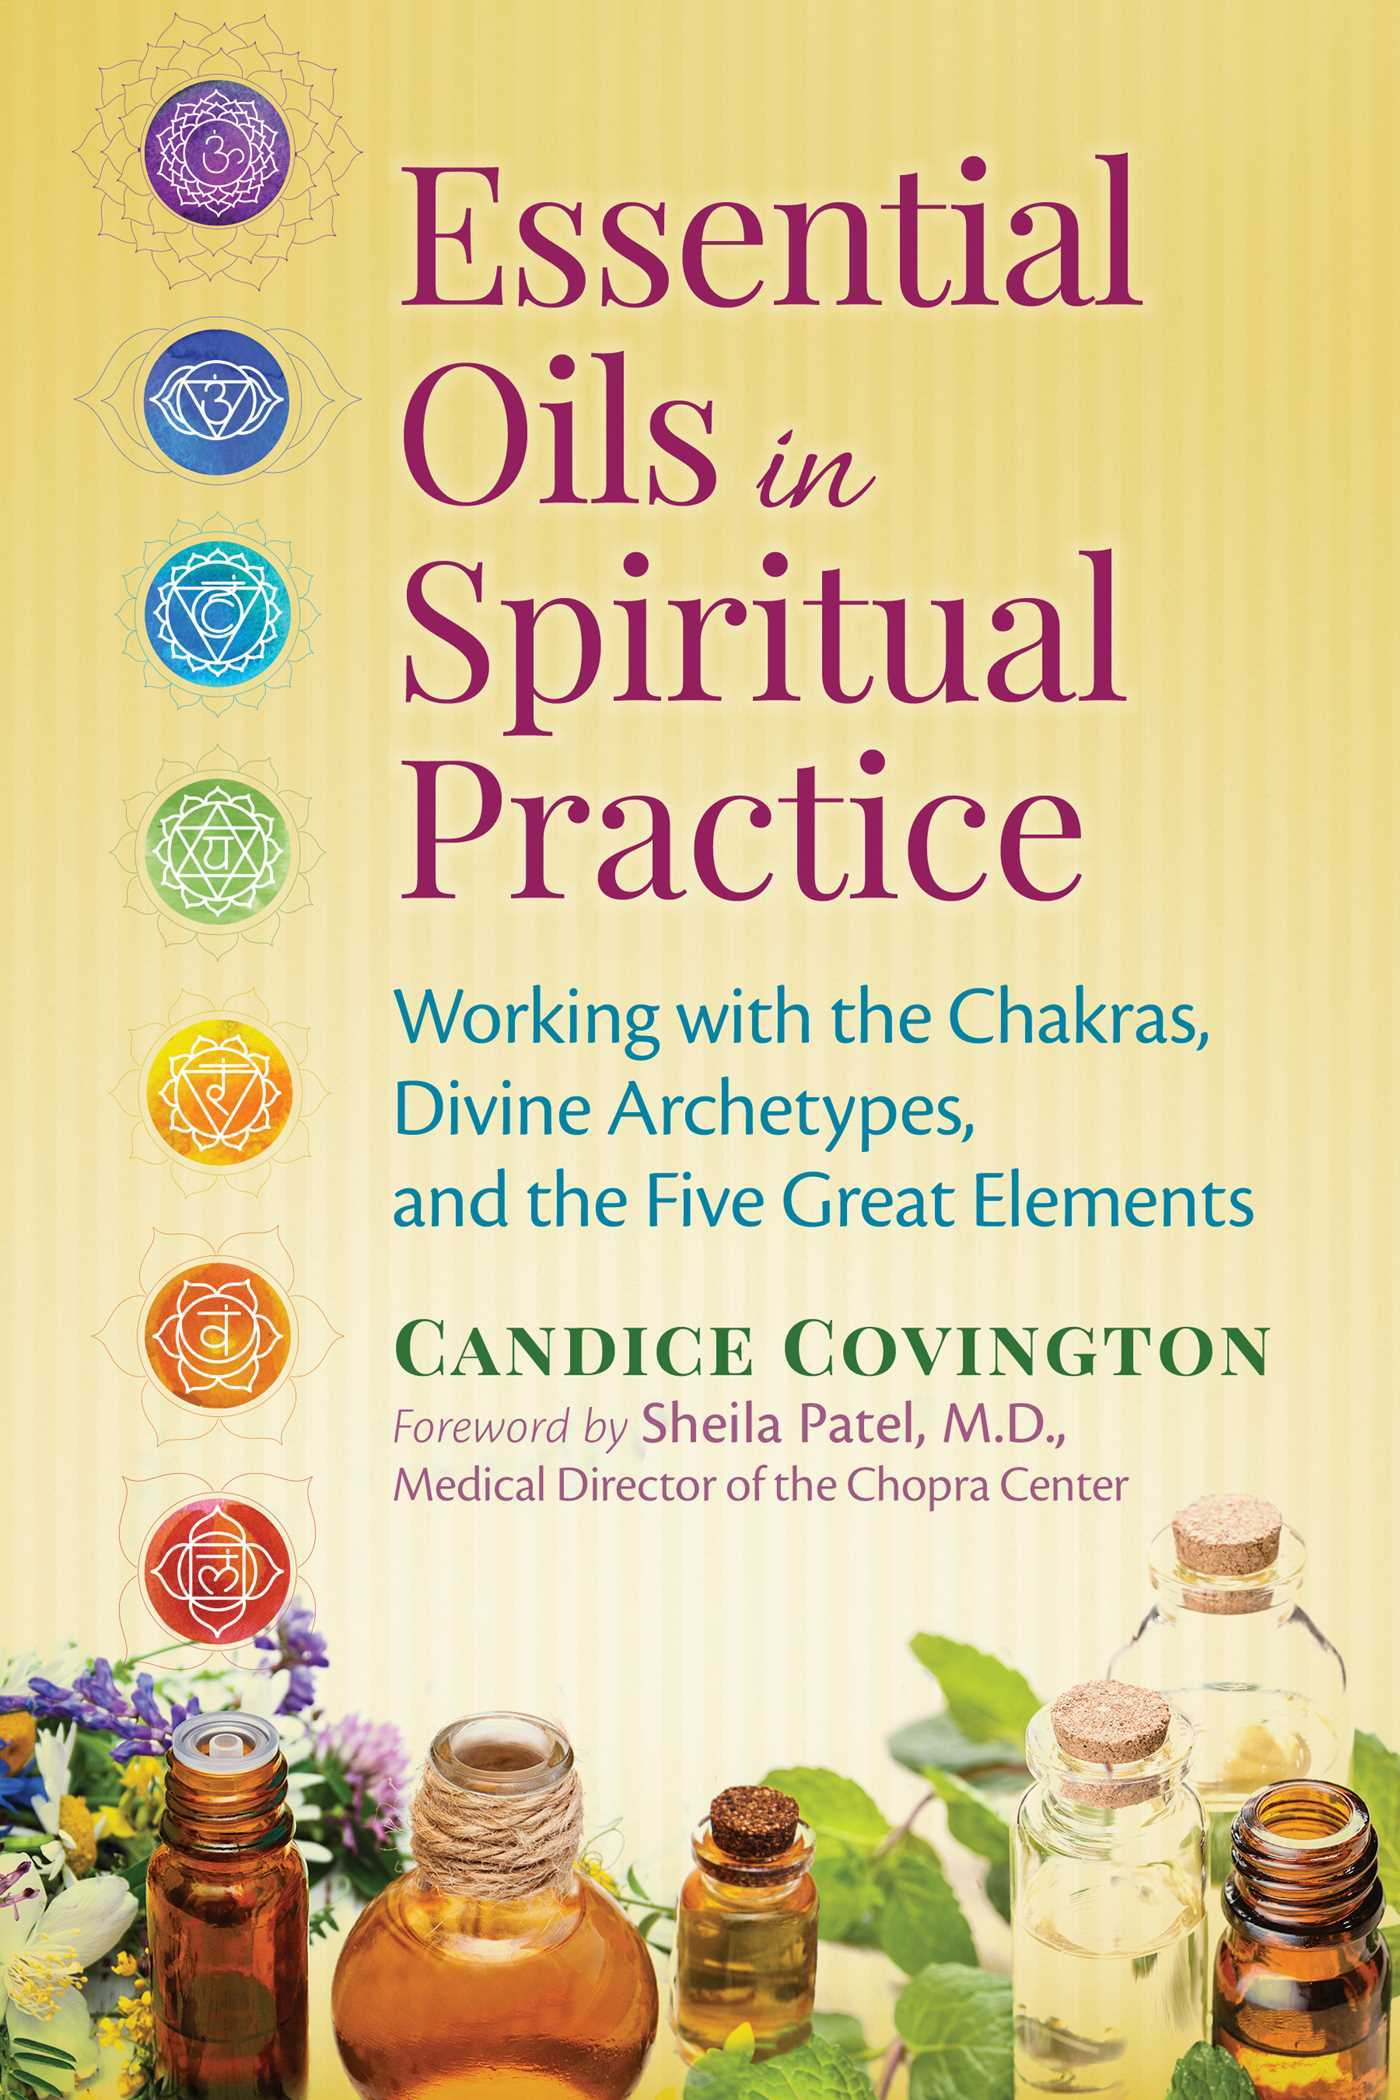 Essential Oils in Spiritual Practice Working with the Chakras, Divine Archetypes, and the Five Great Elements